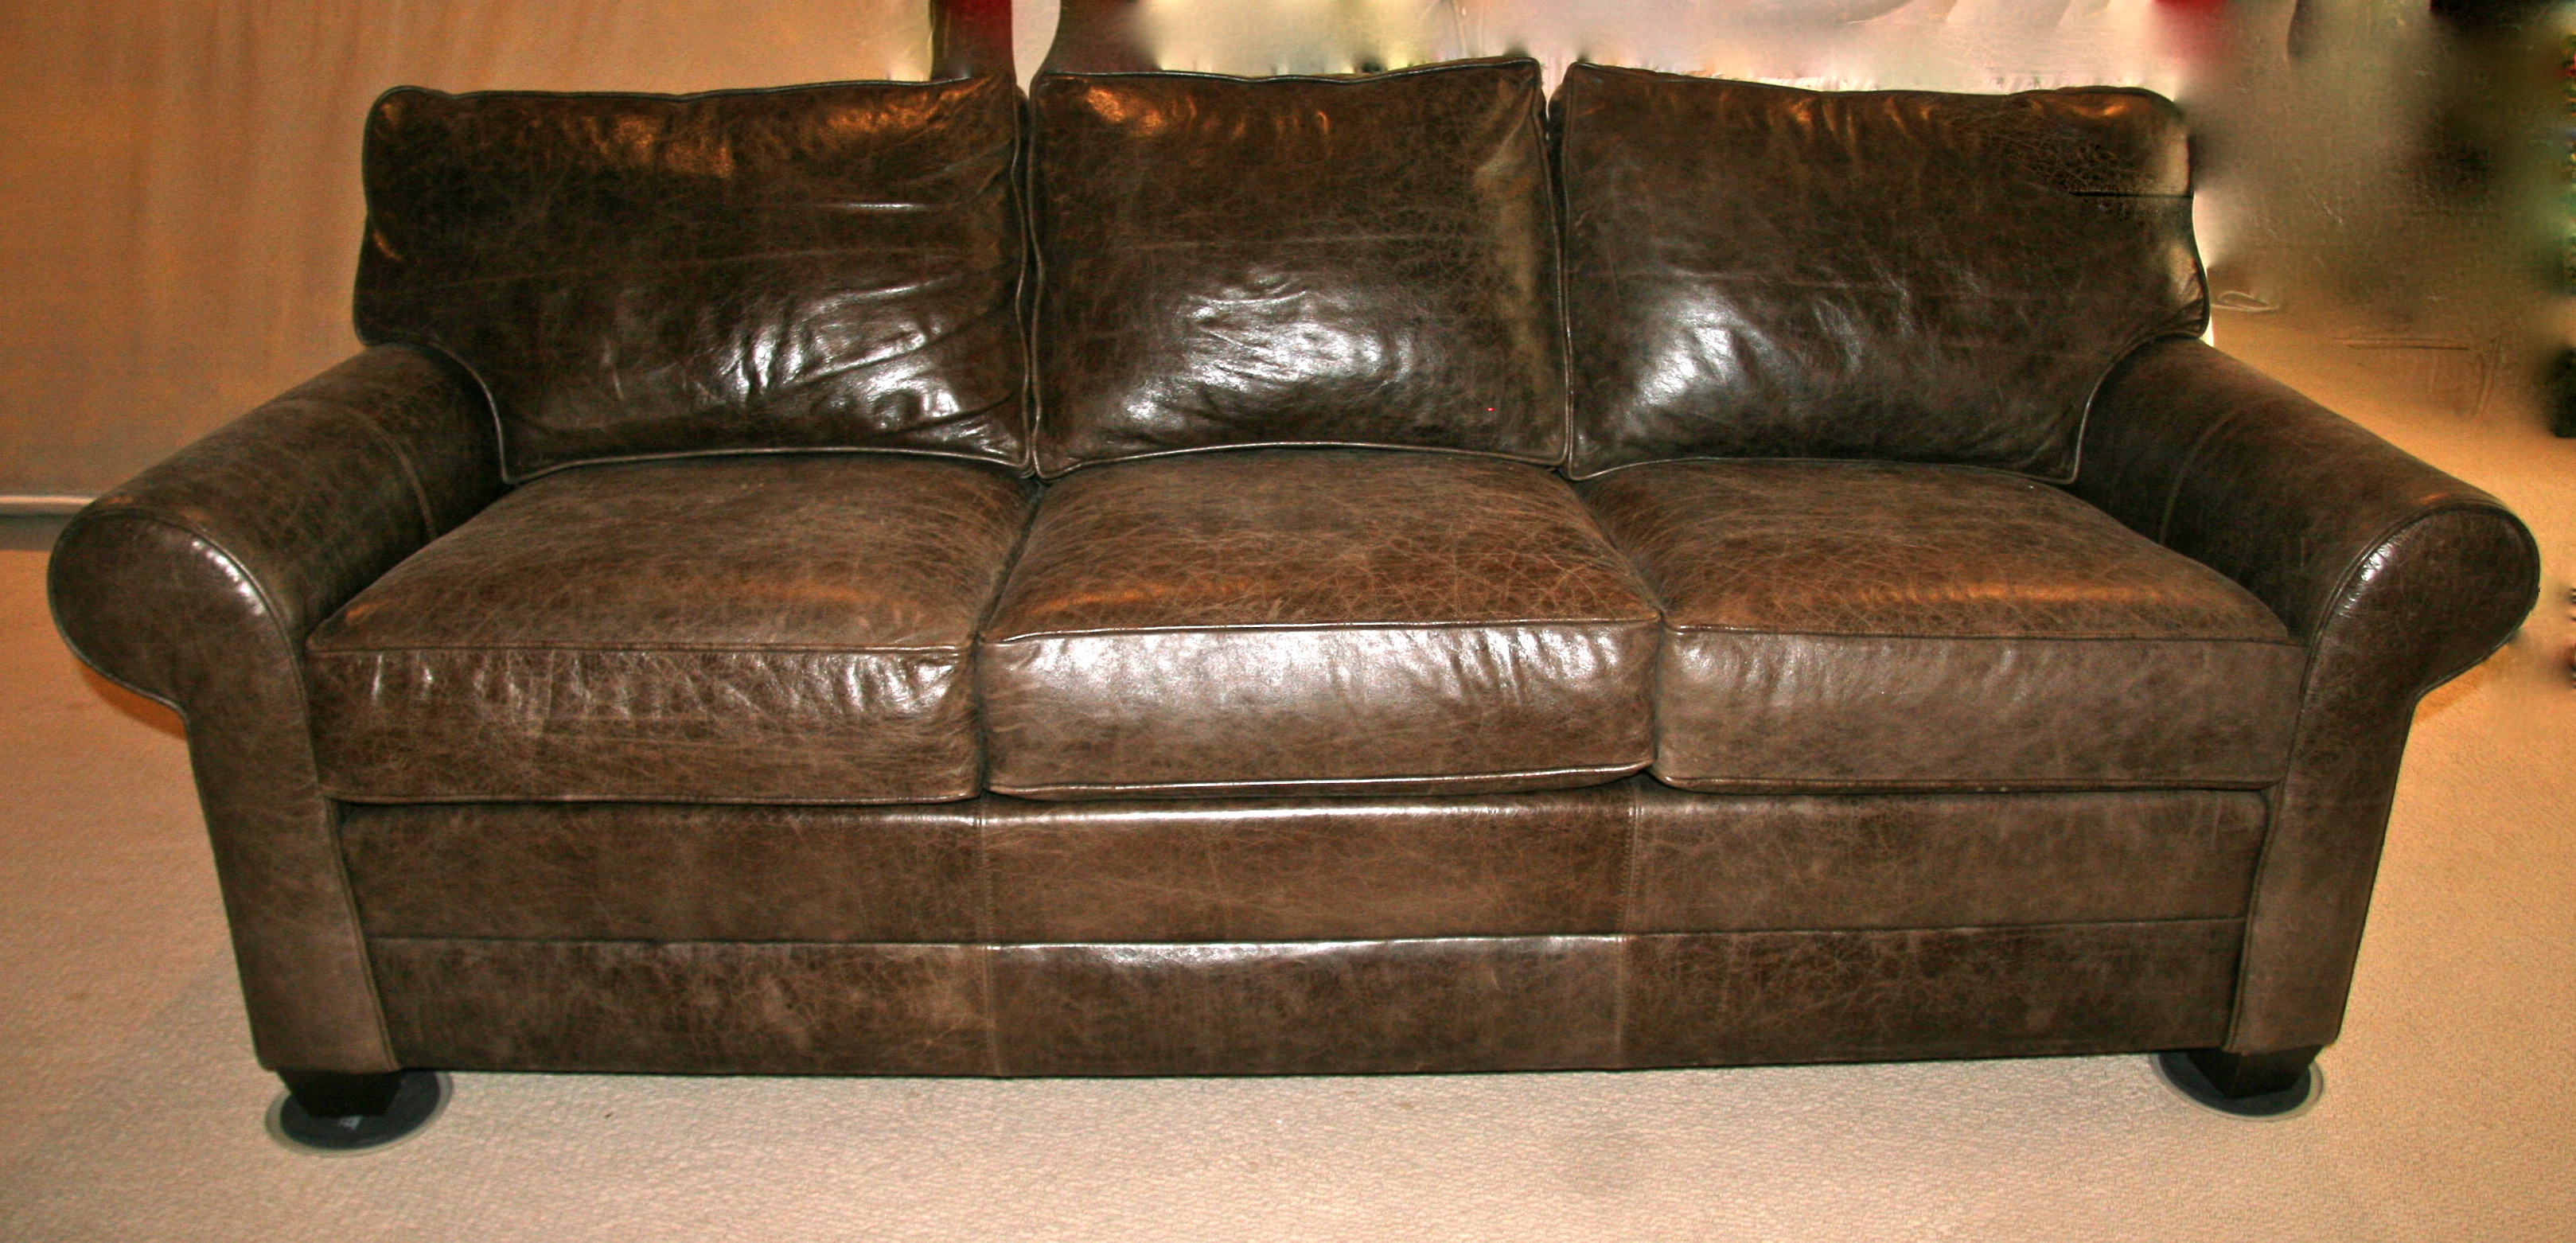 Brown Leather Ethan Allen Sofa | Goodstuffcheapstl\'s Blog